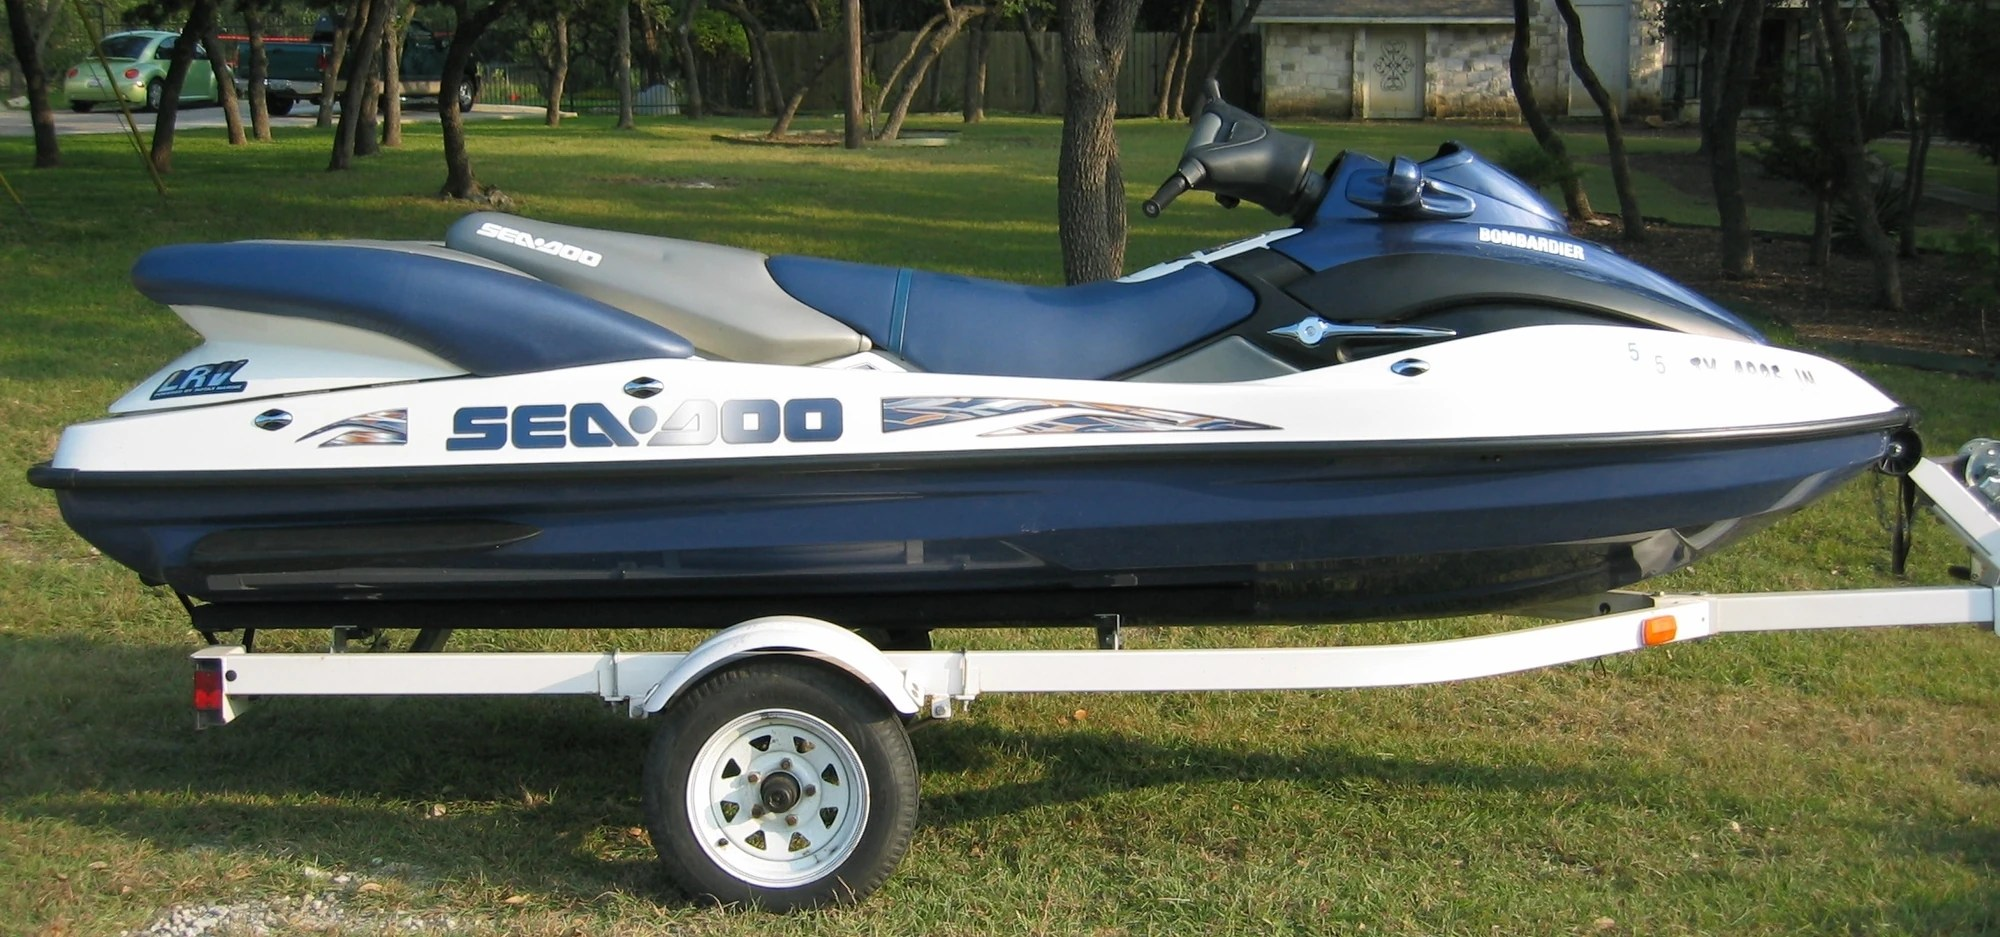 1997 Seadoo Gts Service Manual